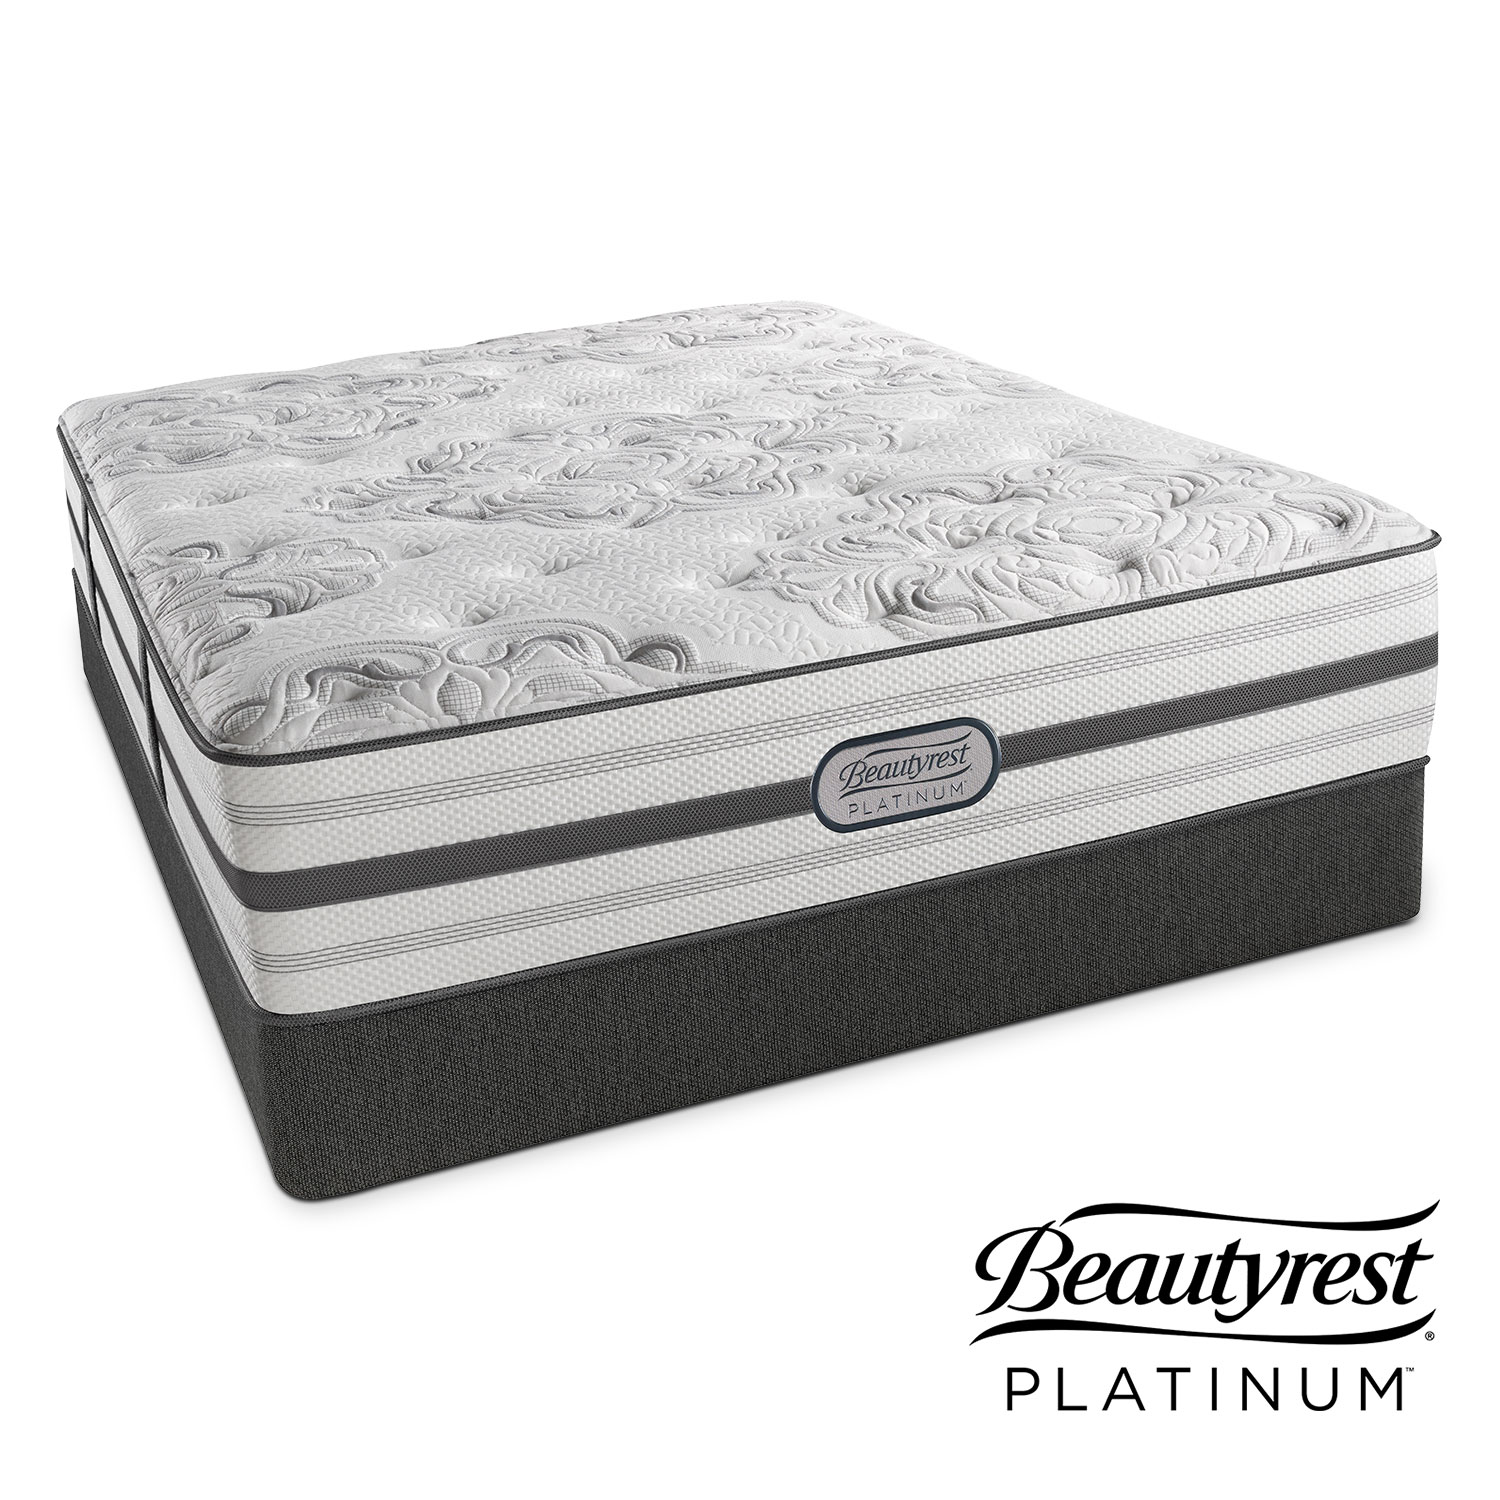 Mattresses and Bedding - Alexandria Queen Mattress/Split Foundation Set